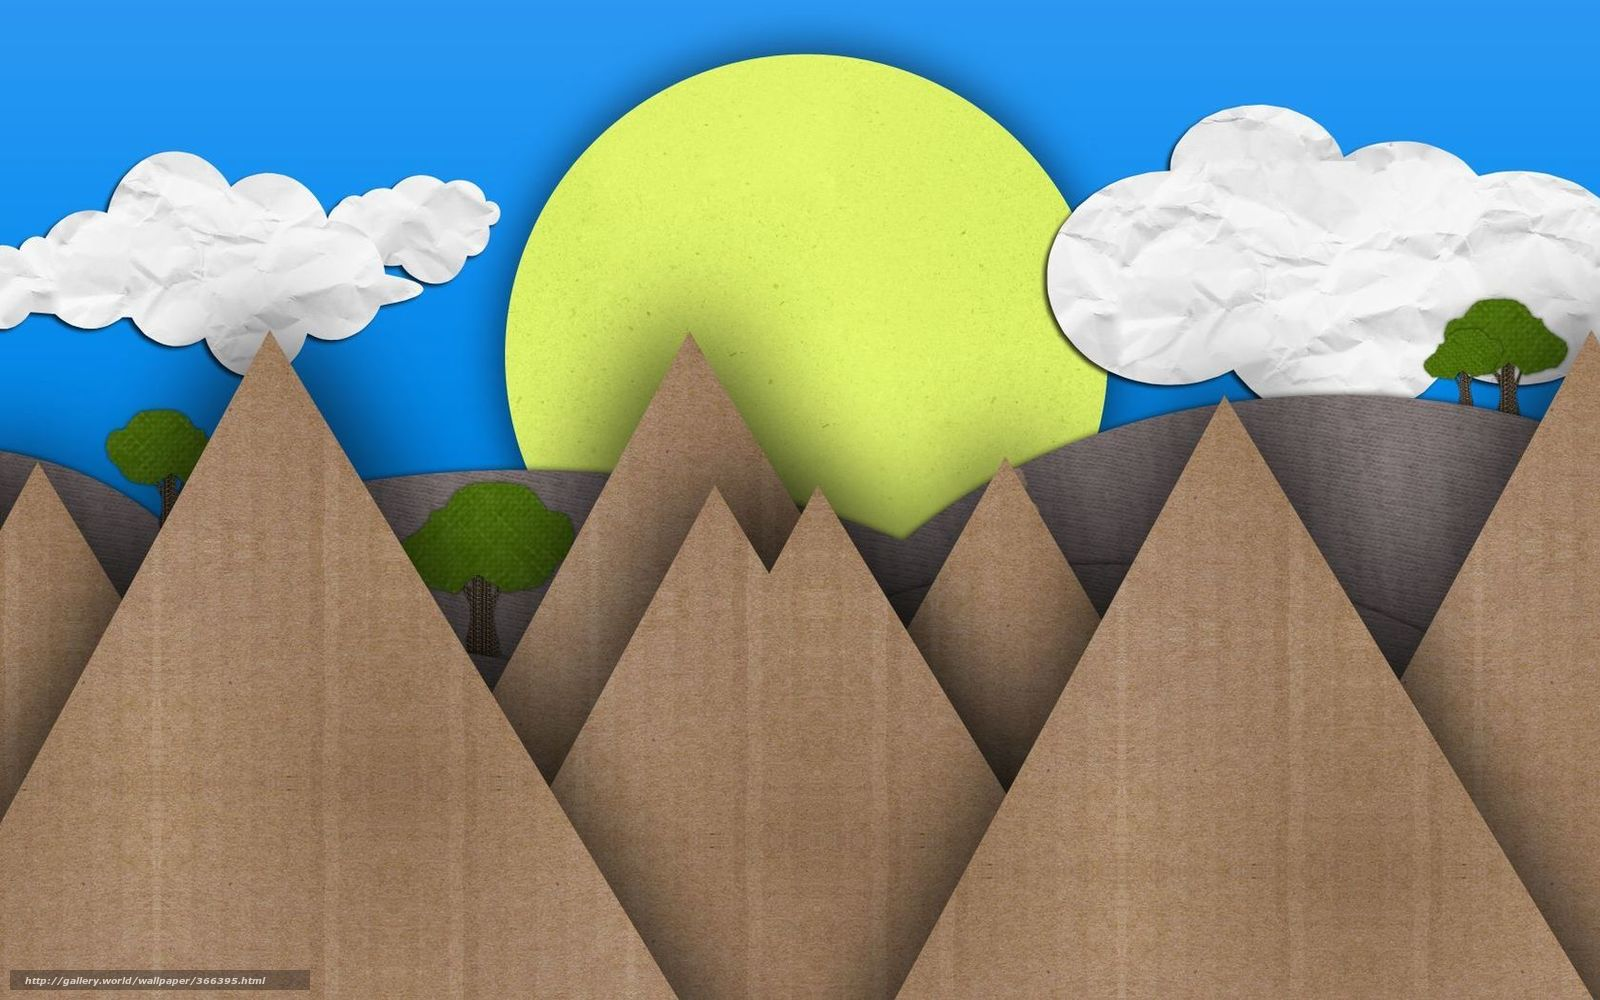 HD wallpapers craft painting ideas for kids